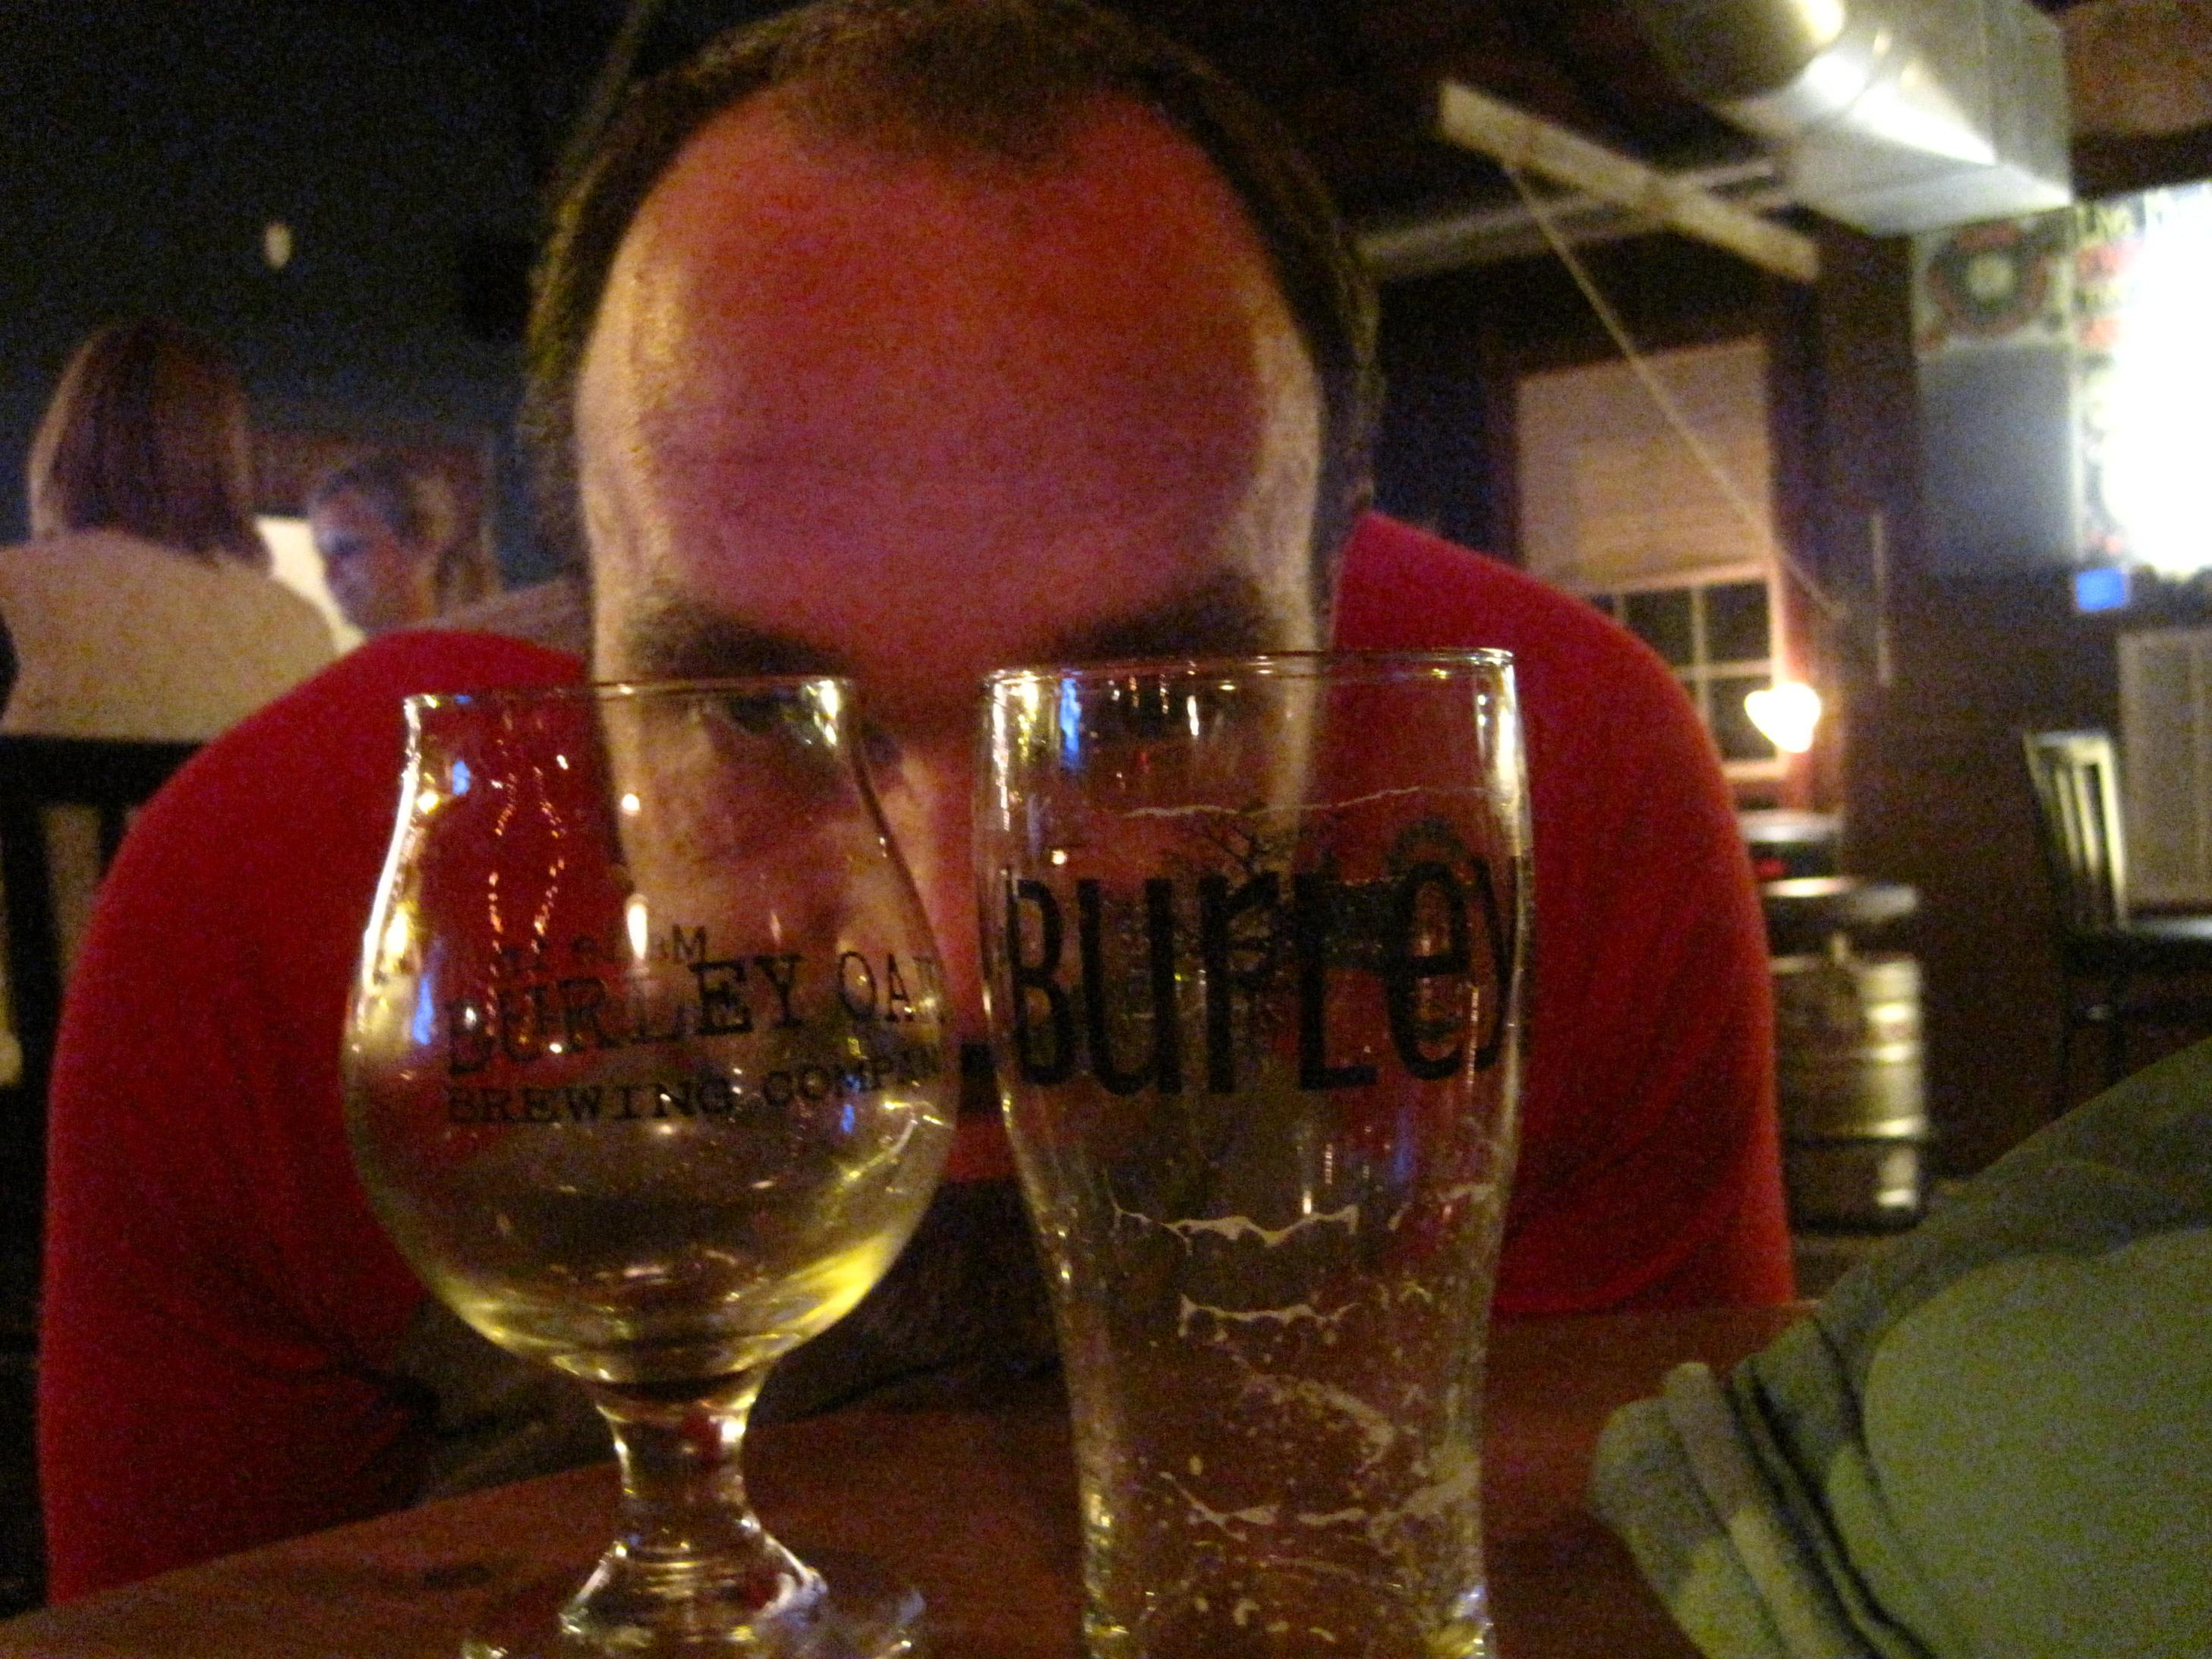 Wordless Wednesday: Beer Goggles